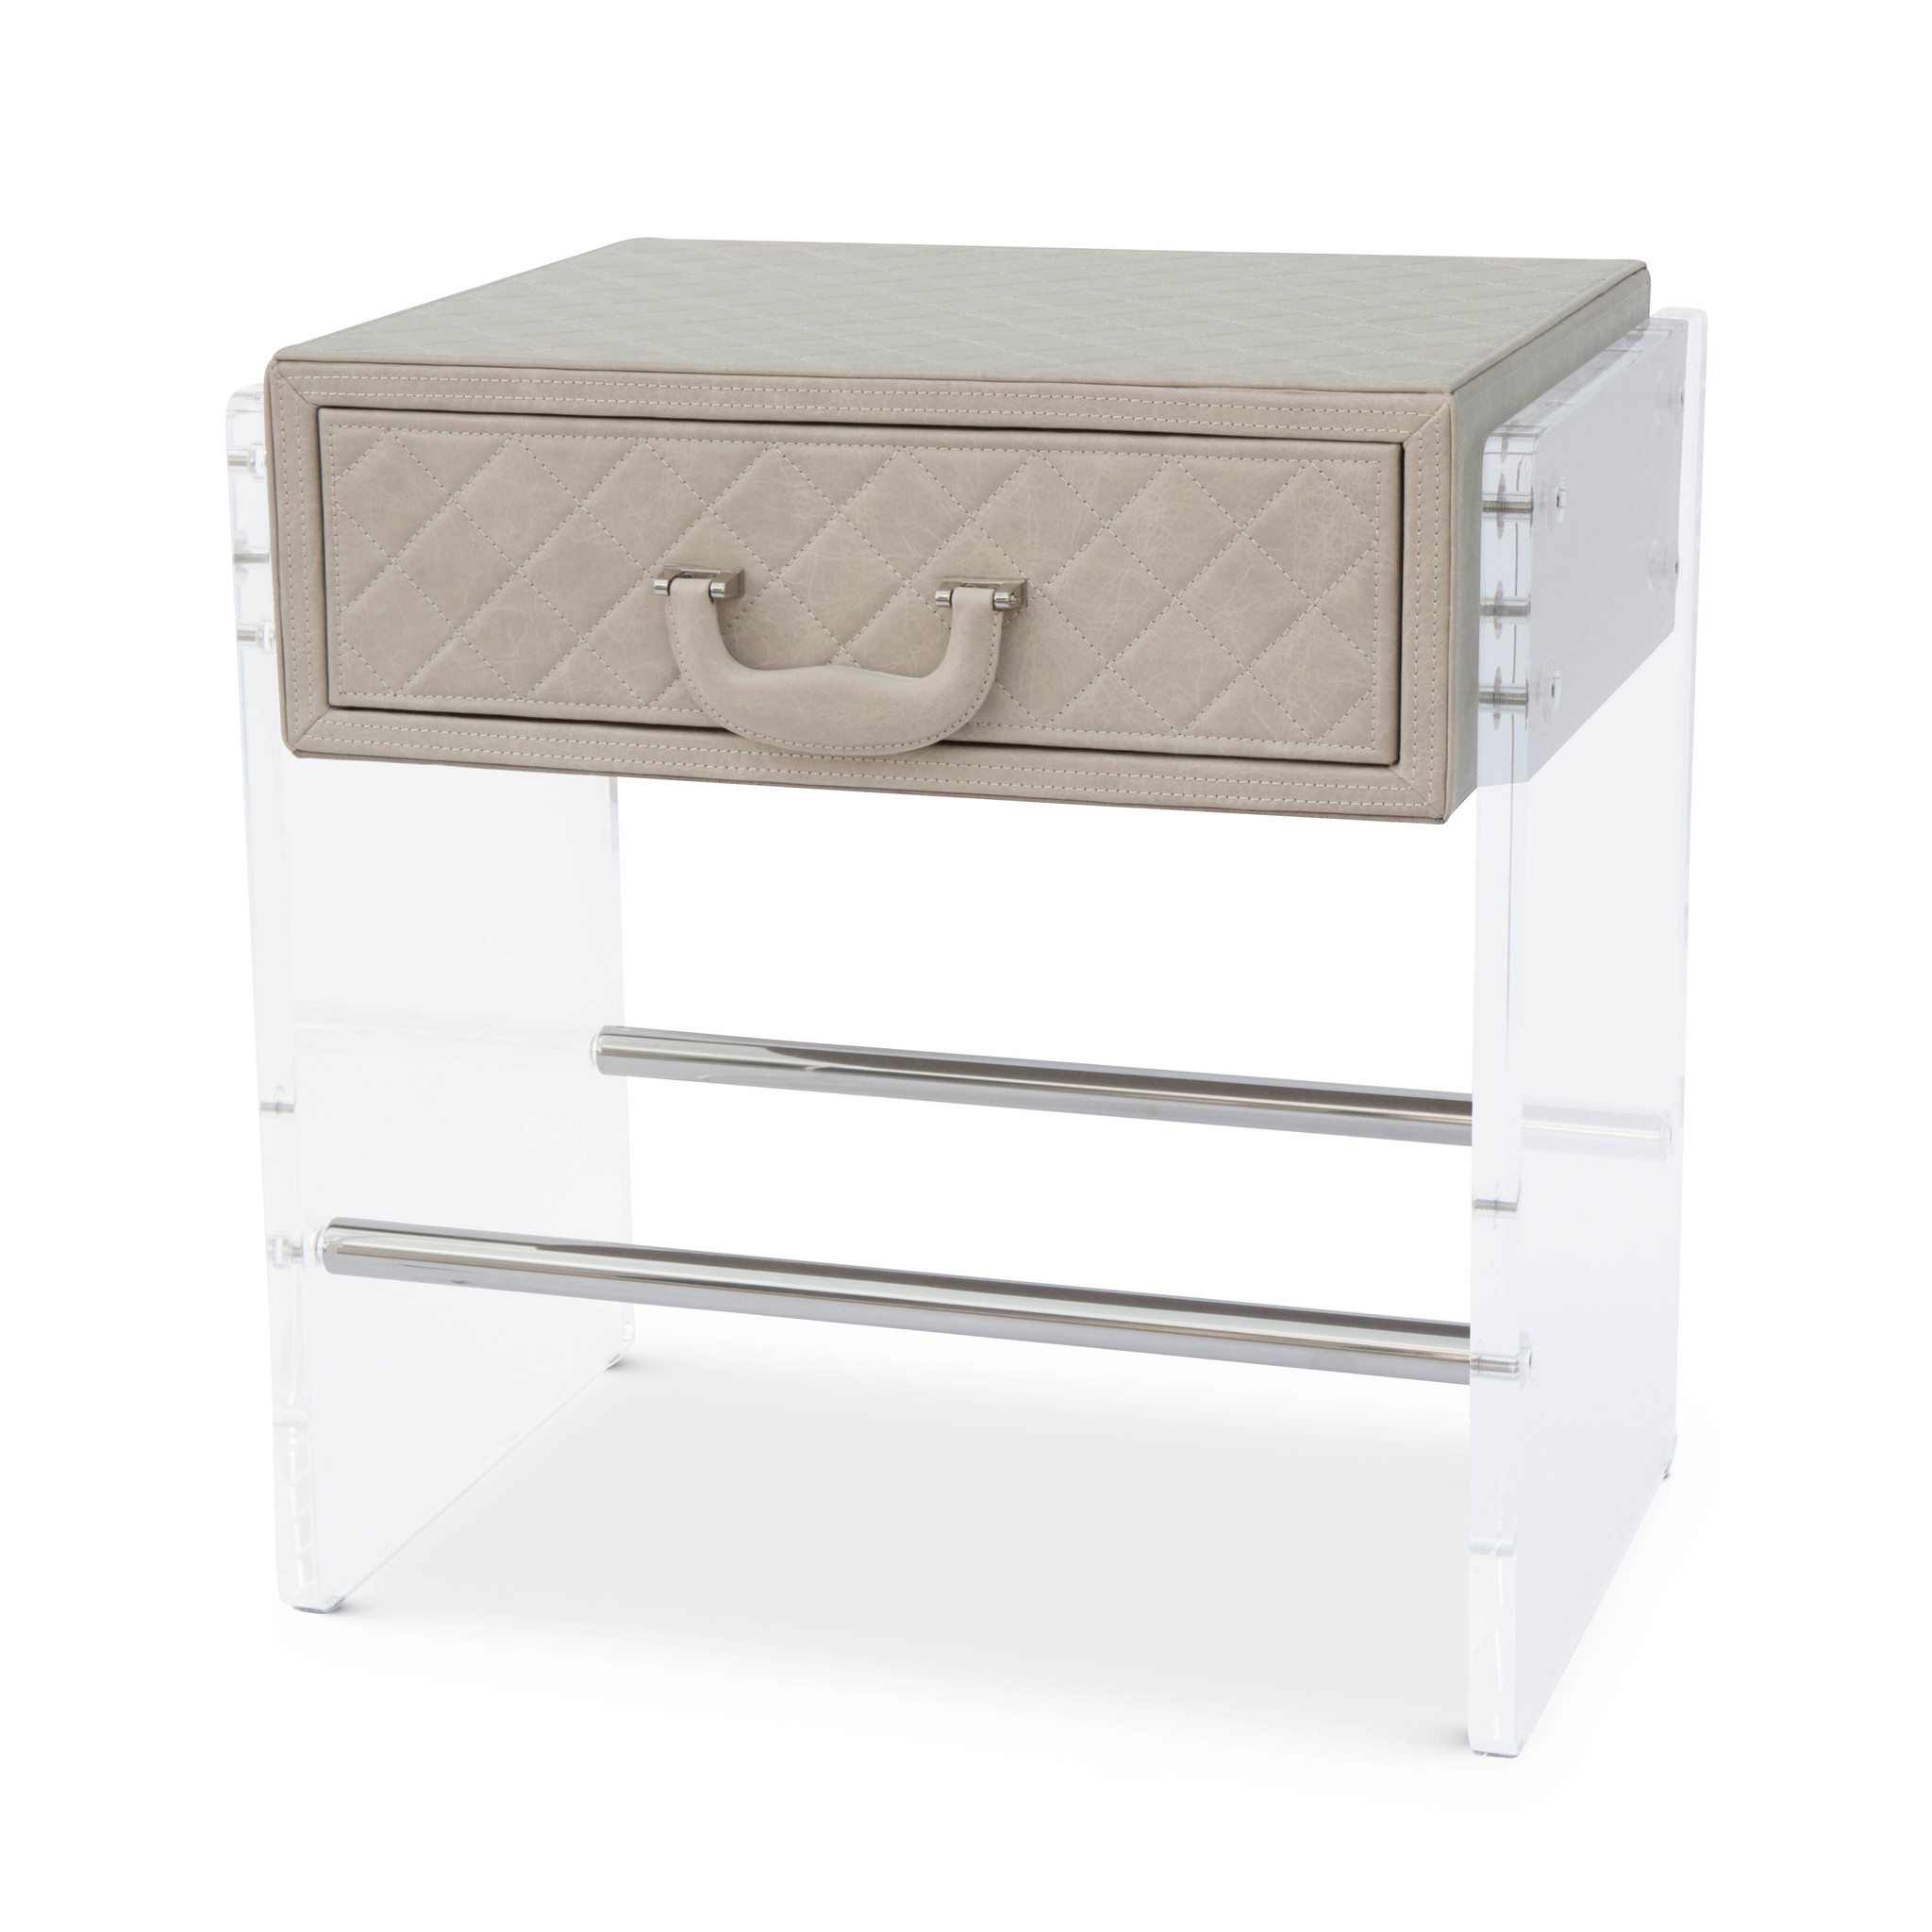 GENOVA Side Table Cappucino Leather-1